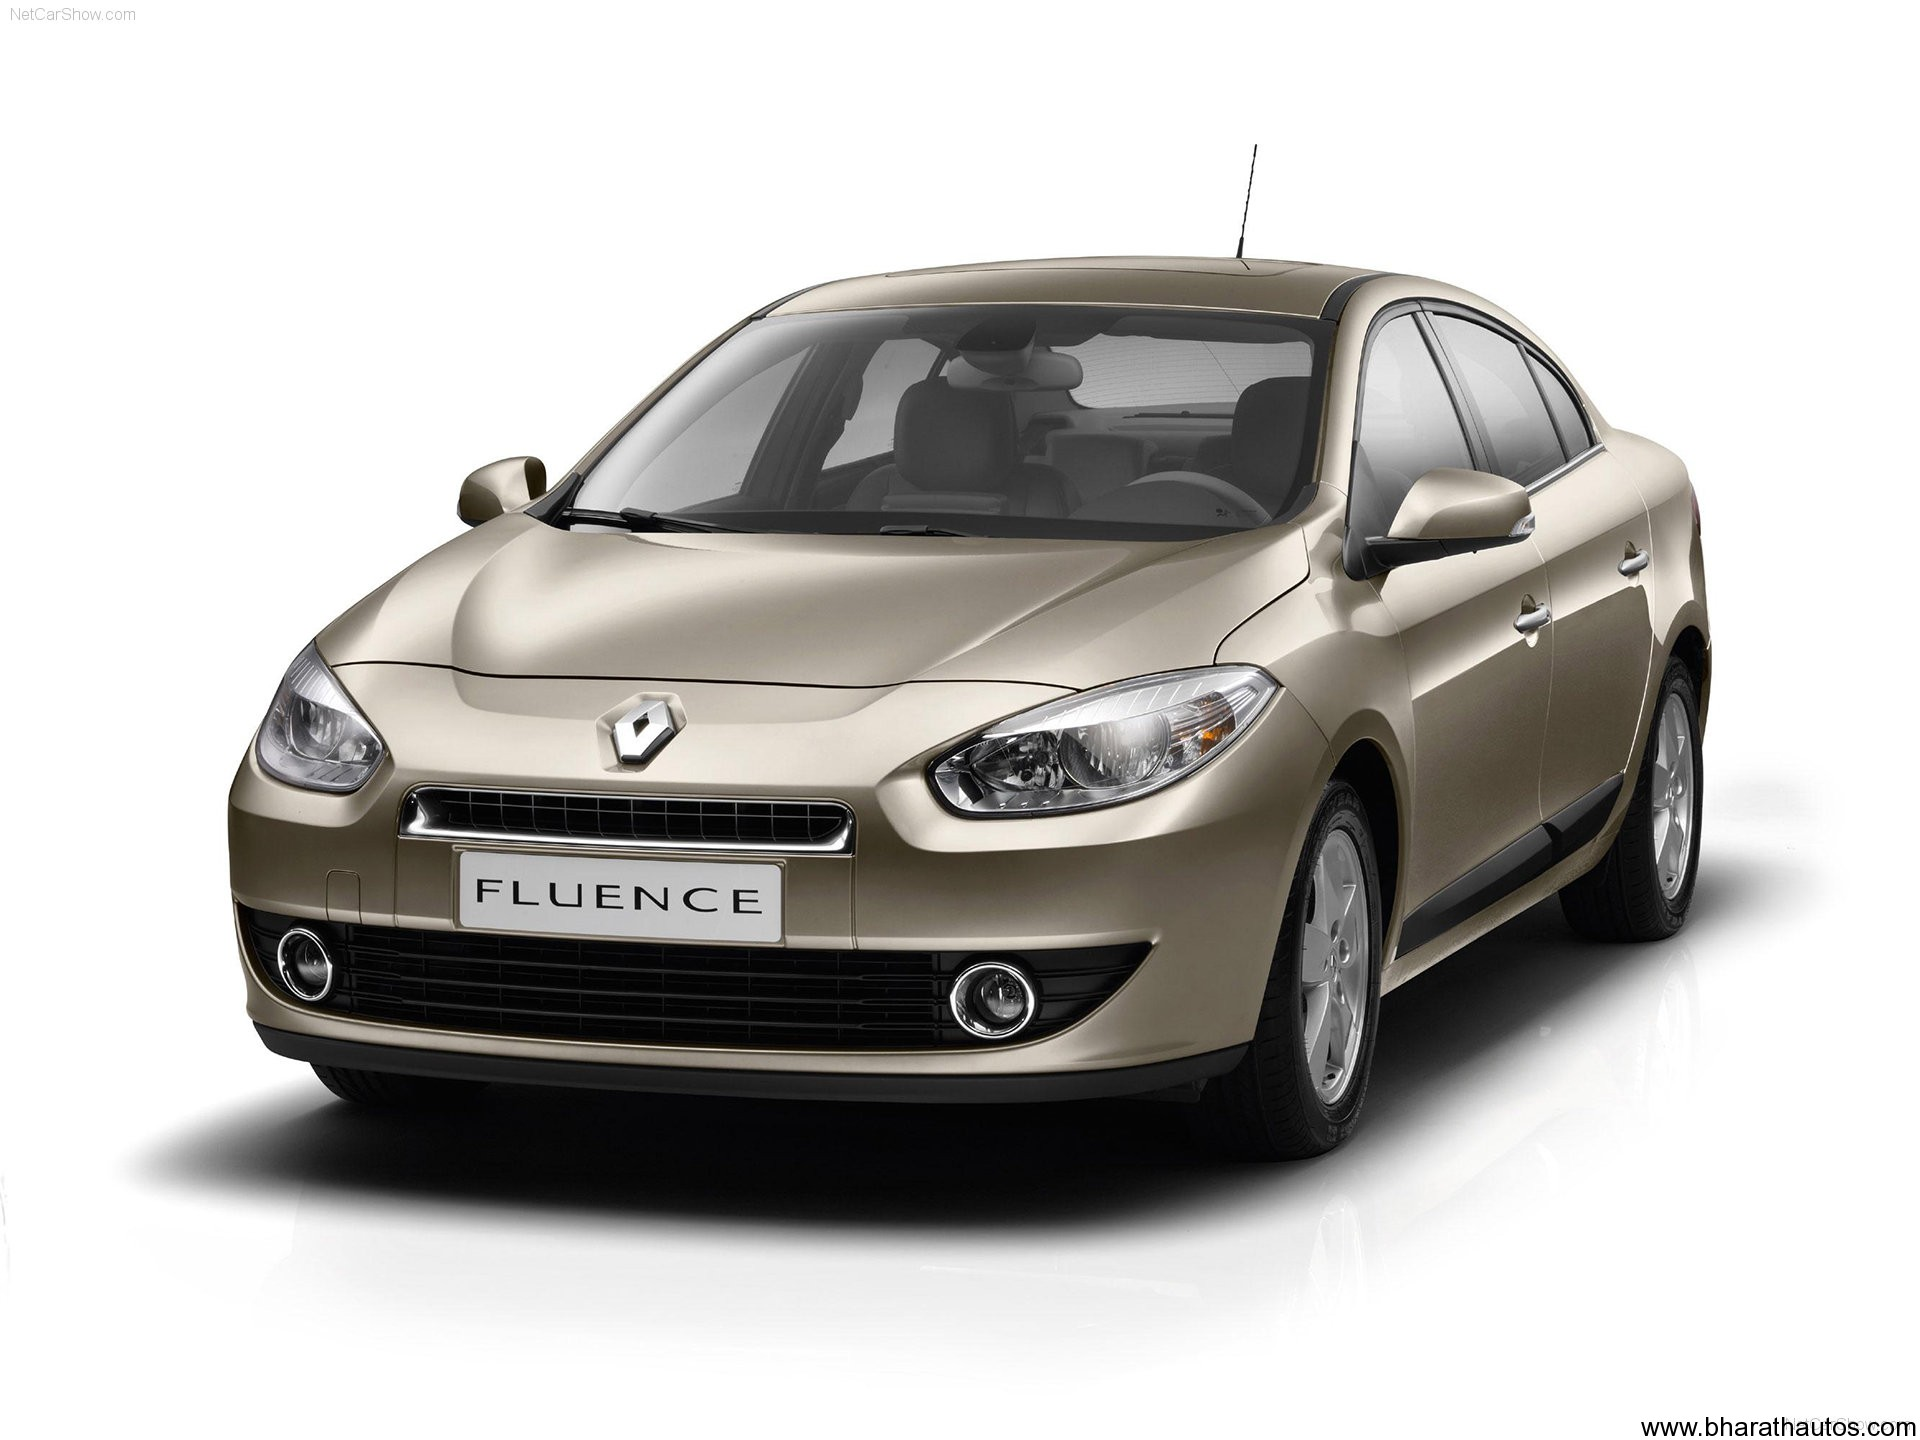 Renault-Fluence-2010-wallpaper